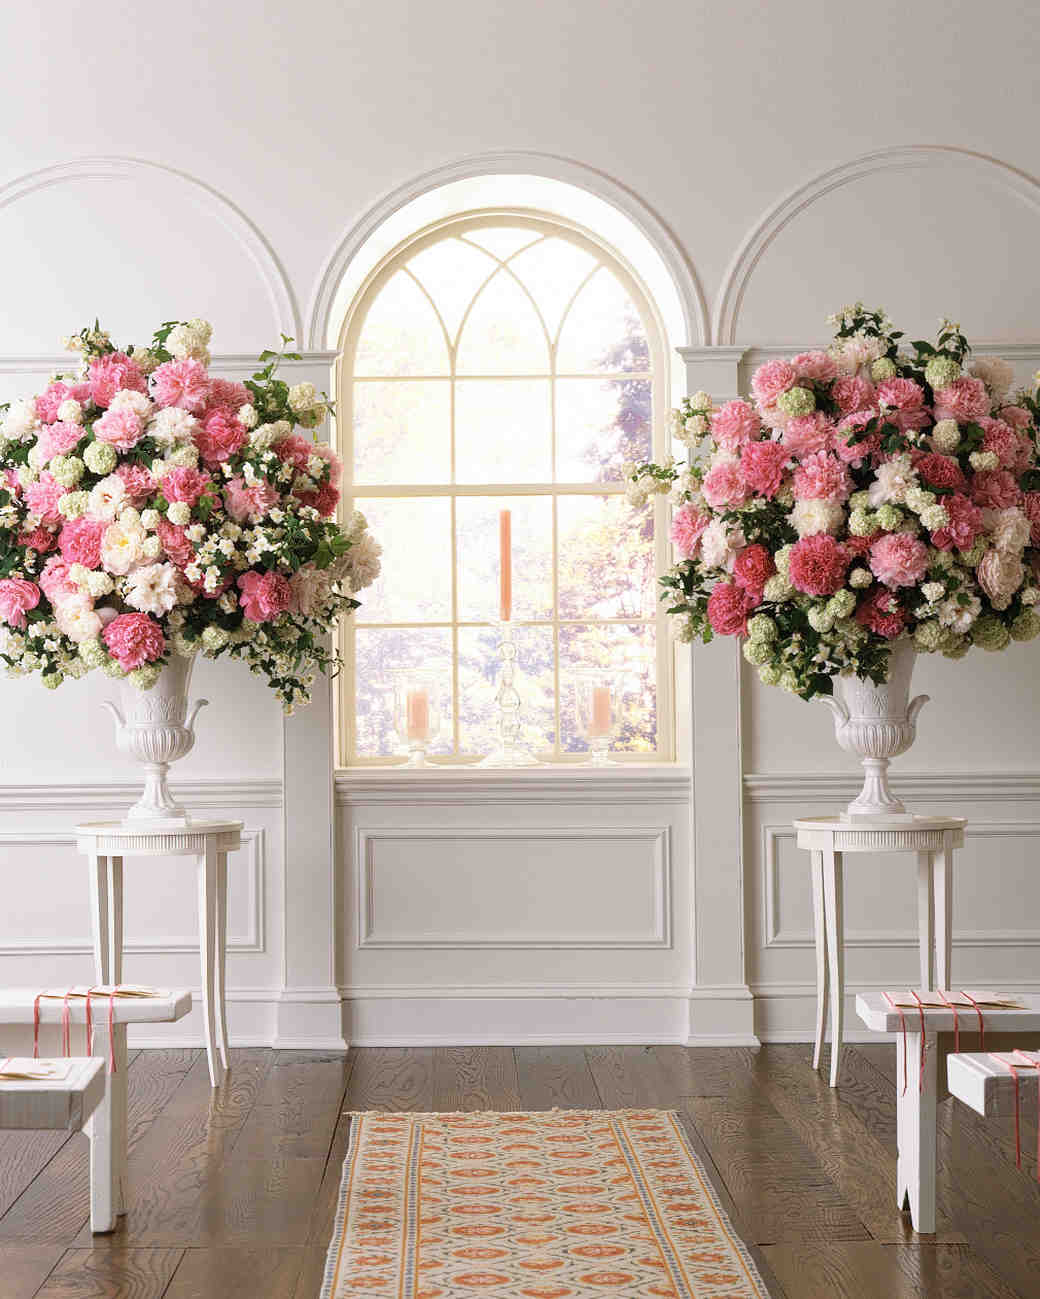 Wedding Altar Centerpieces: Peony-Inspired Wedding Ideas